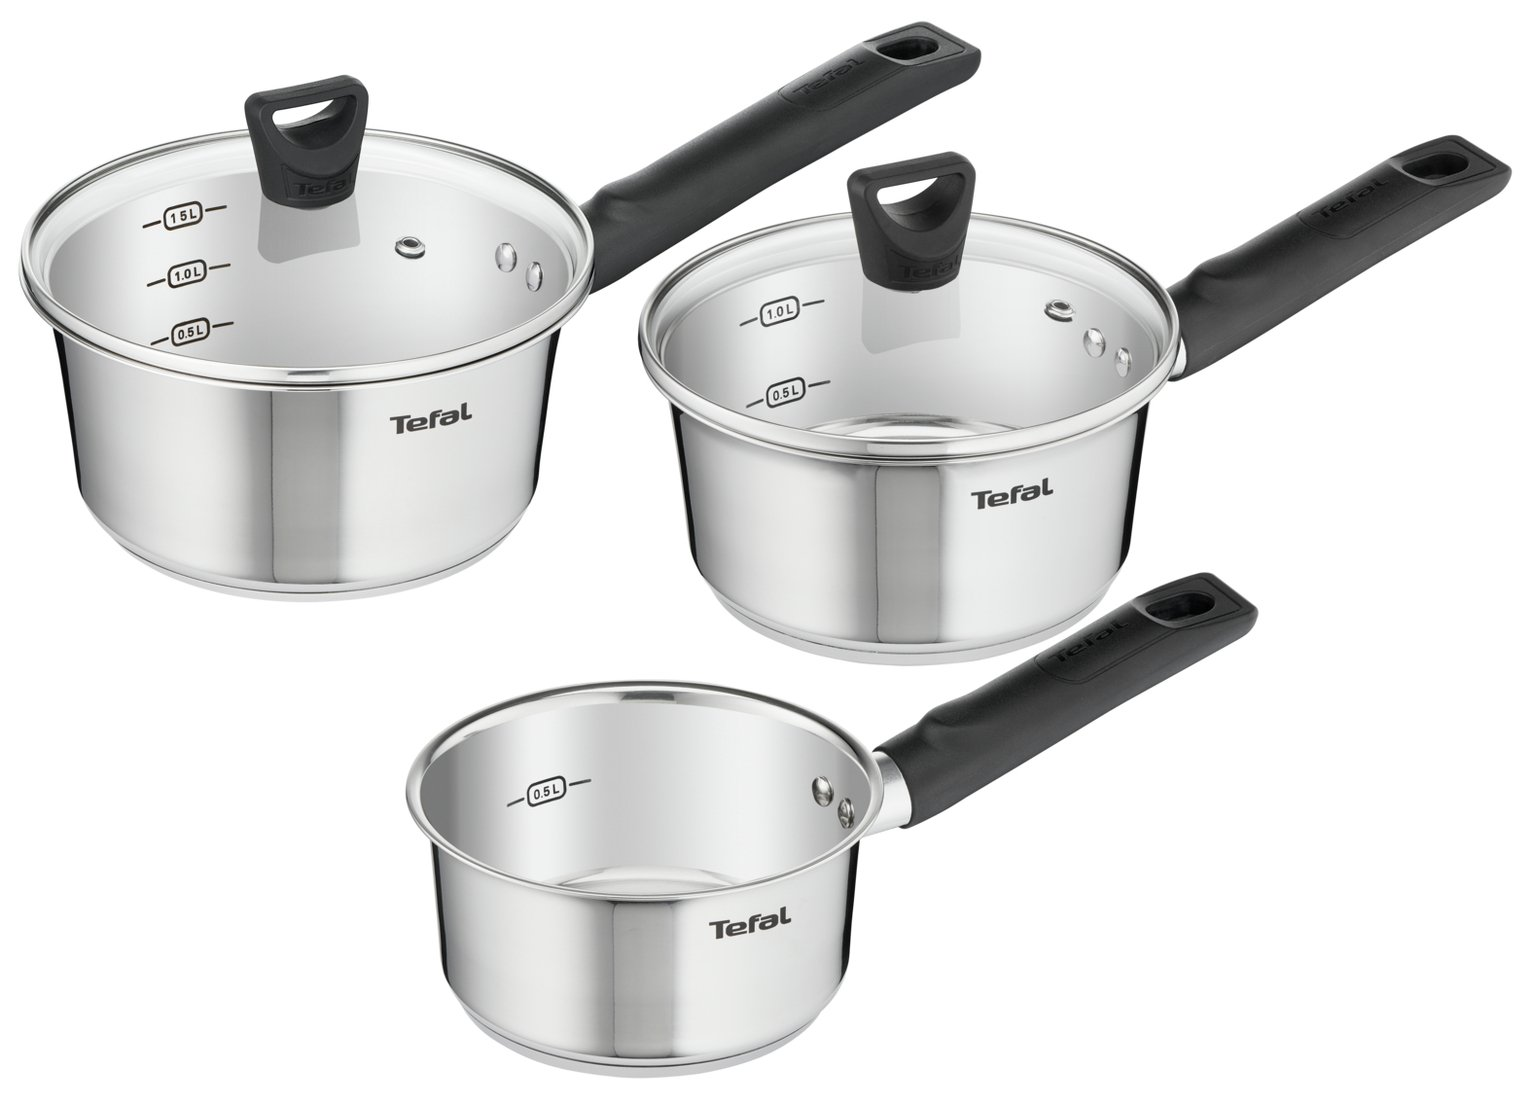 Tefal Simpleo 3 Piece Stainless Steel Non-Stick Pan Set